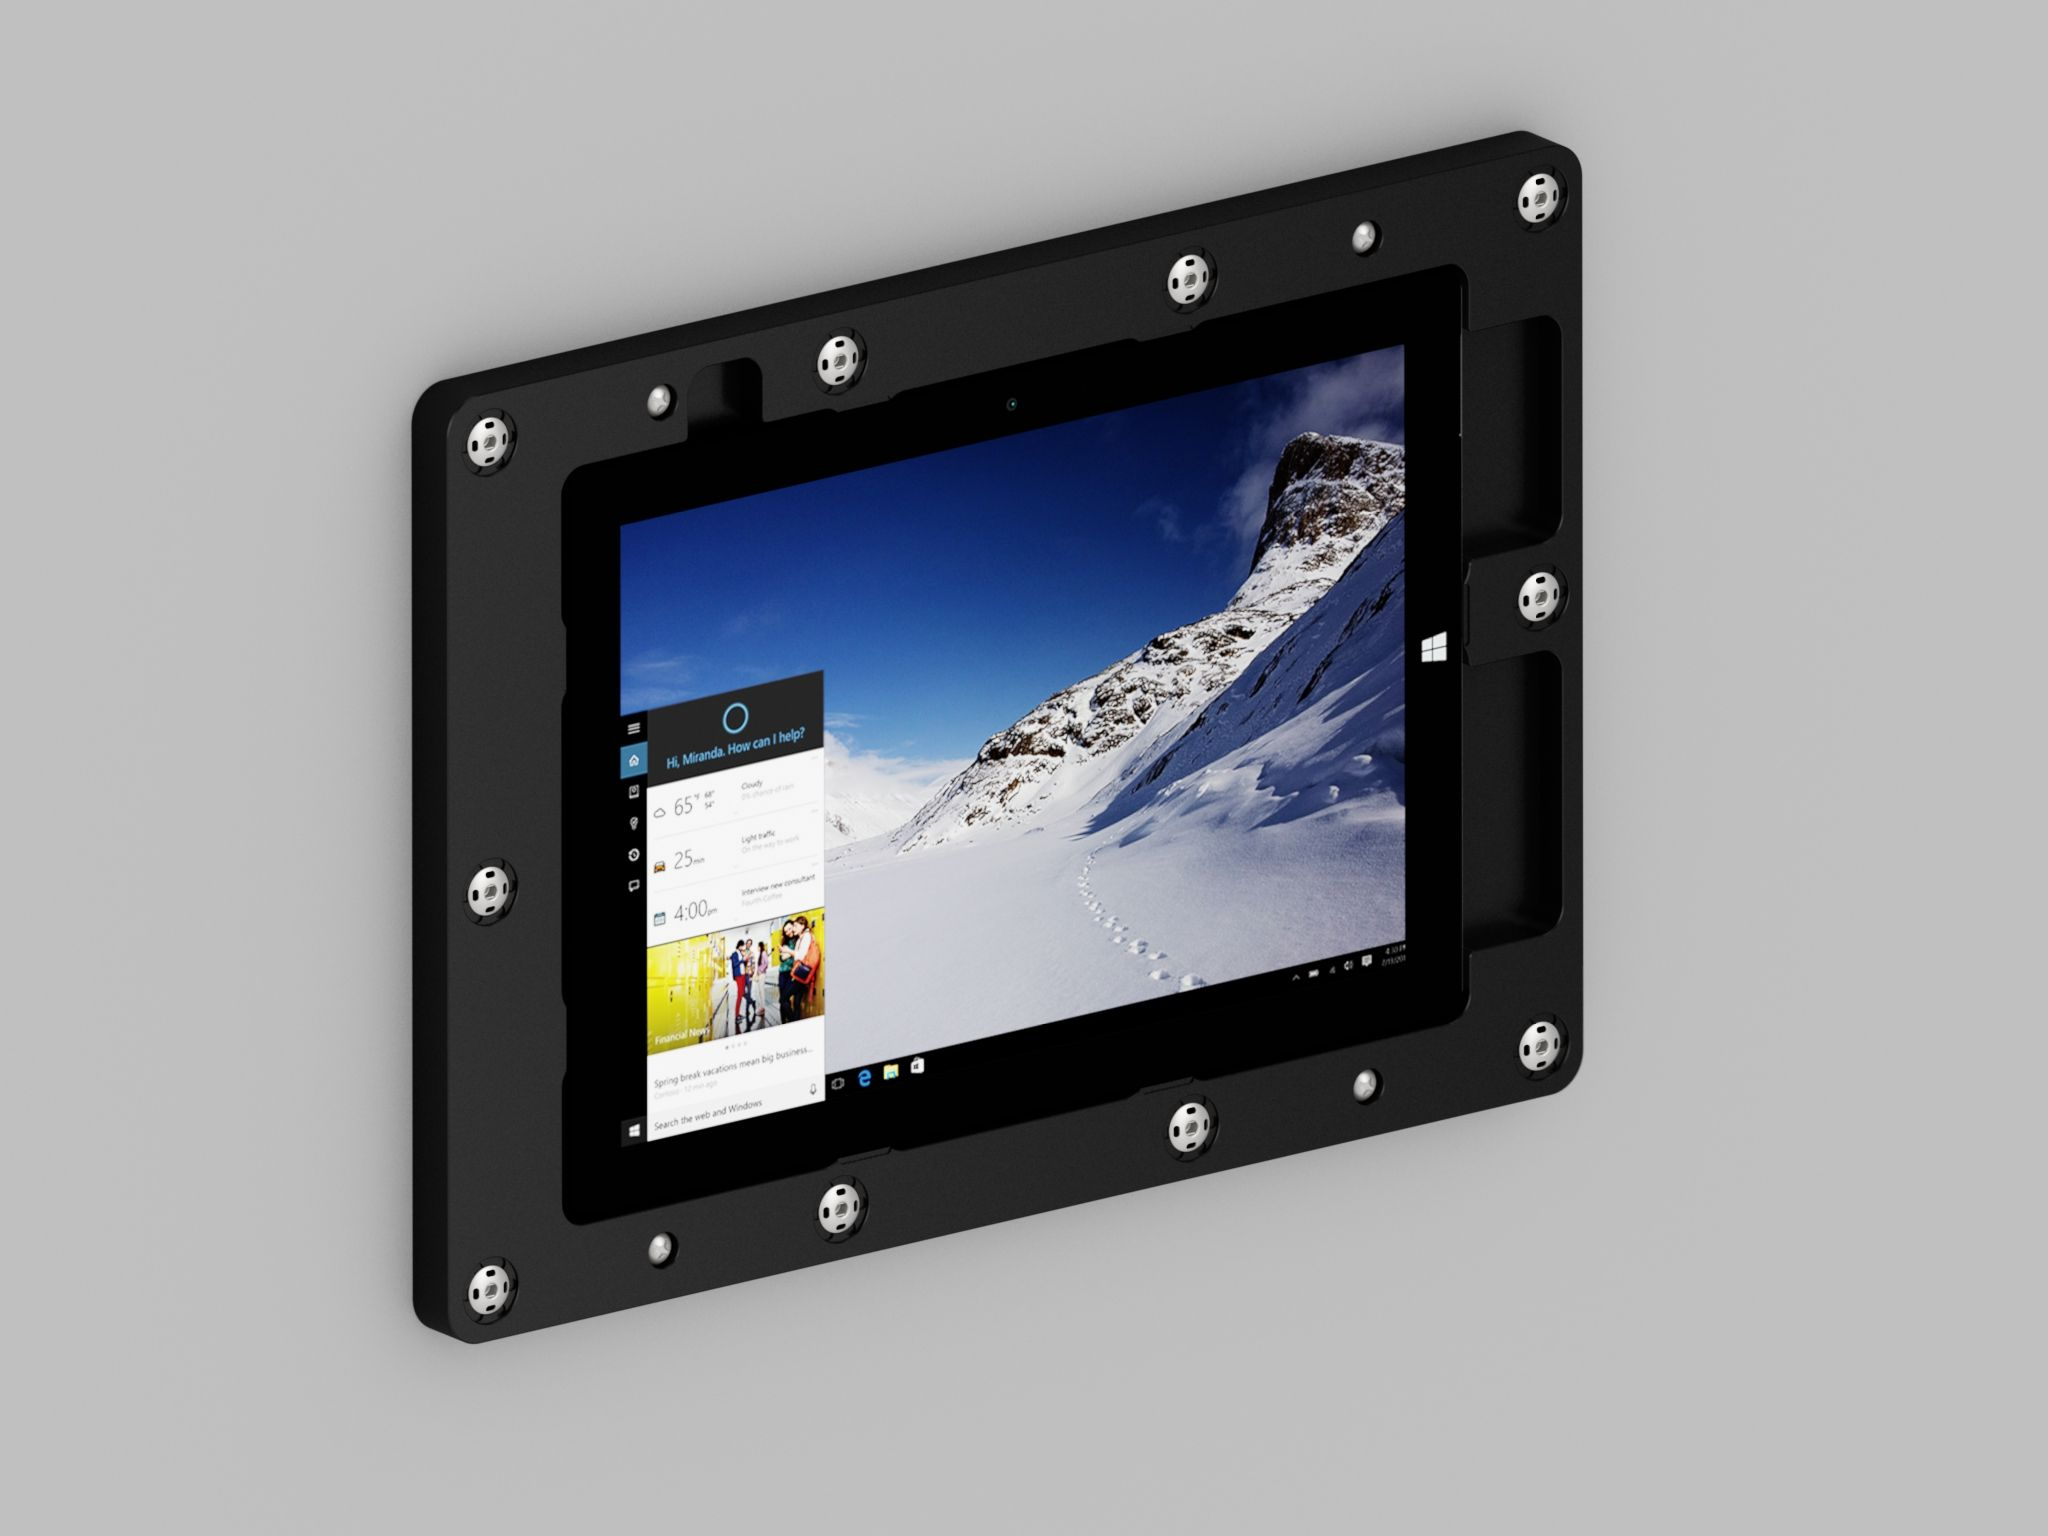 The Usb Ports Power Button And More On Our Installed Surface 3 On Wall Mount Are Readily Exposed Wall Tablet Tablet Mount Tablet